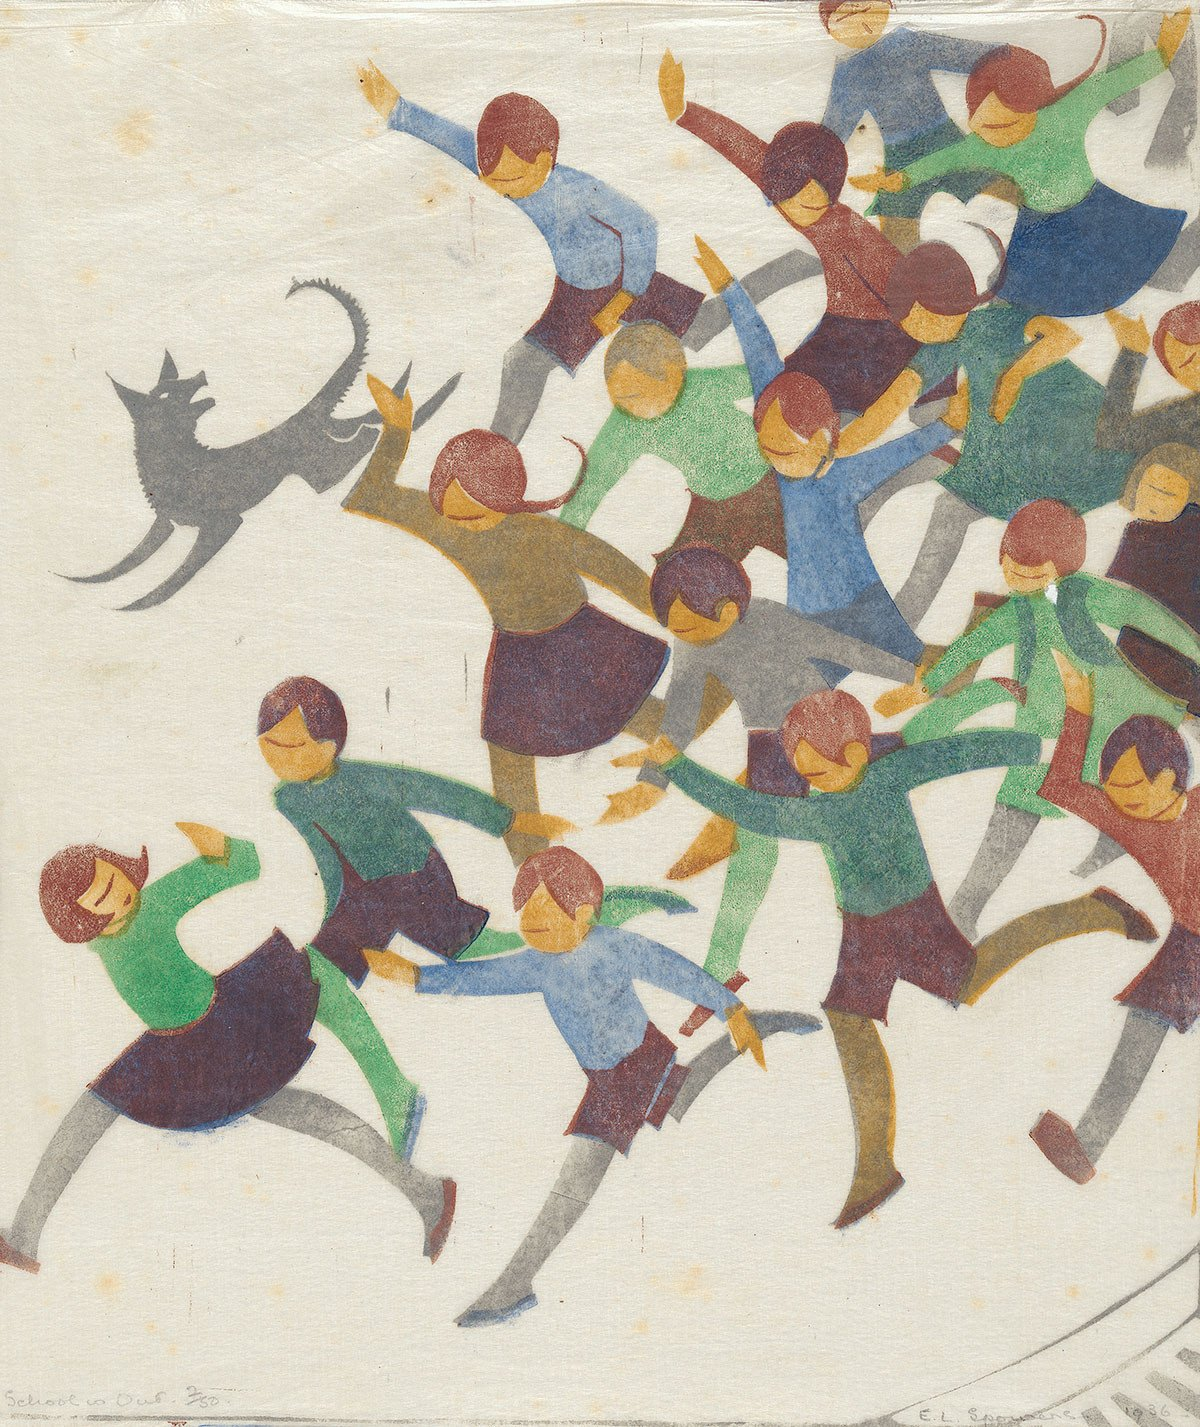 School is Out by Ethel Spowers